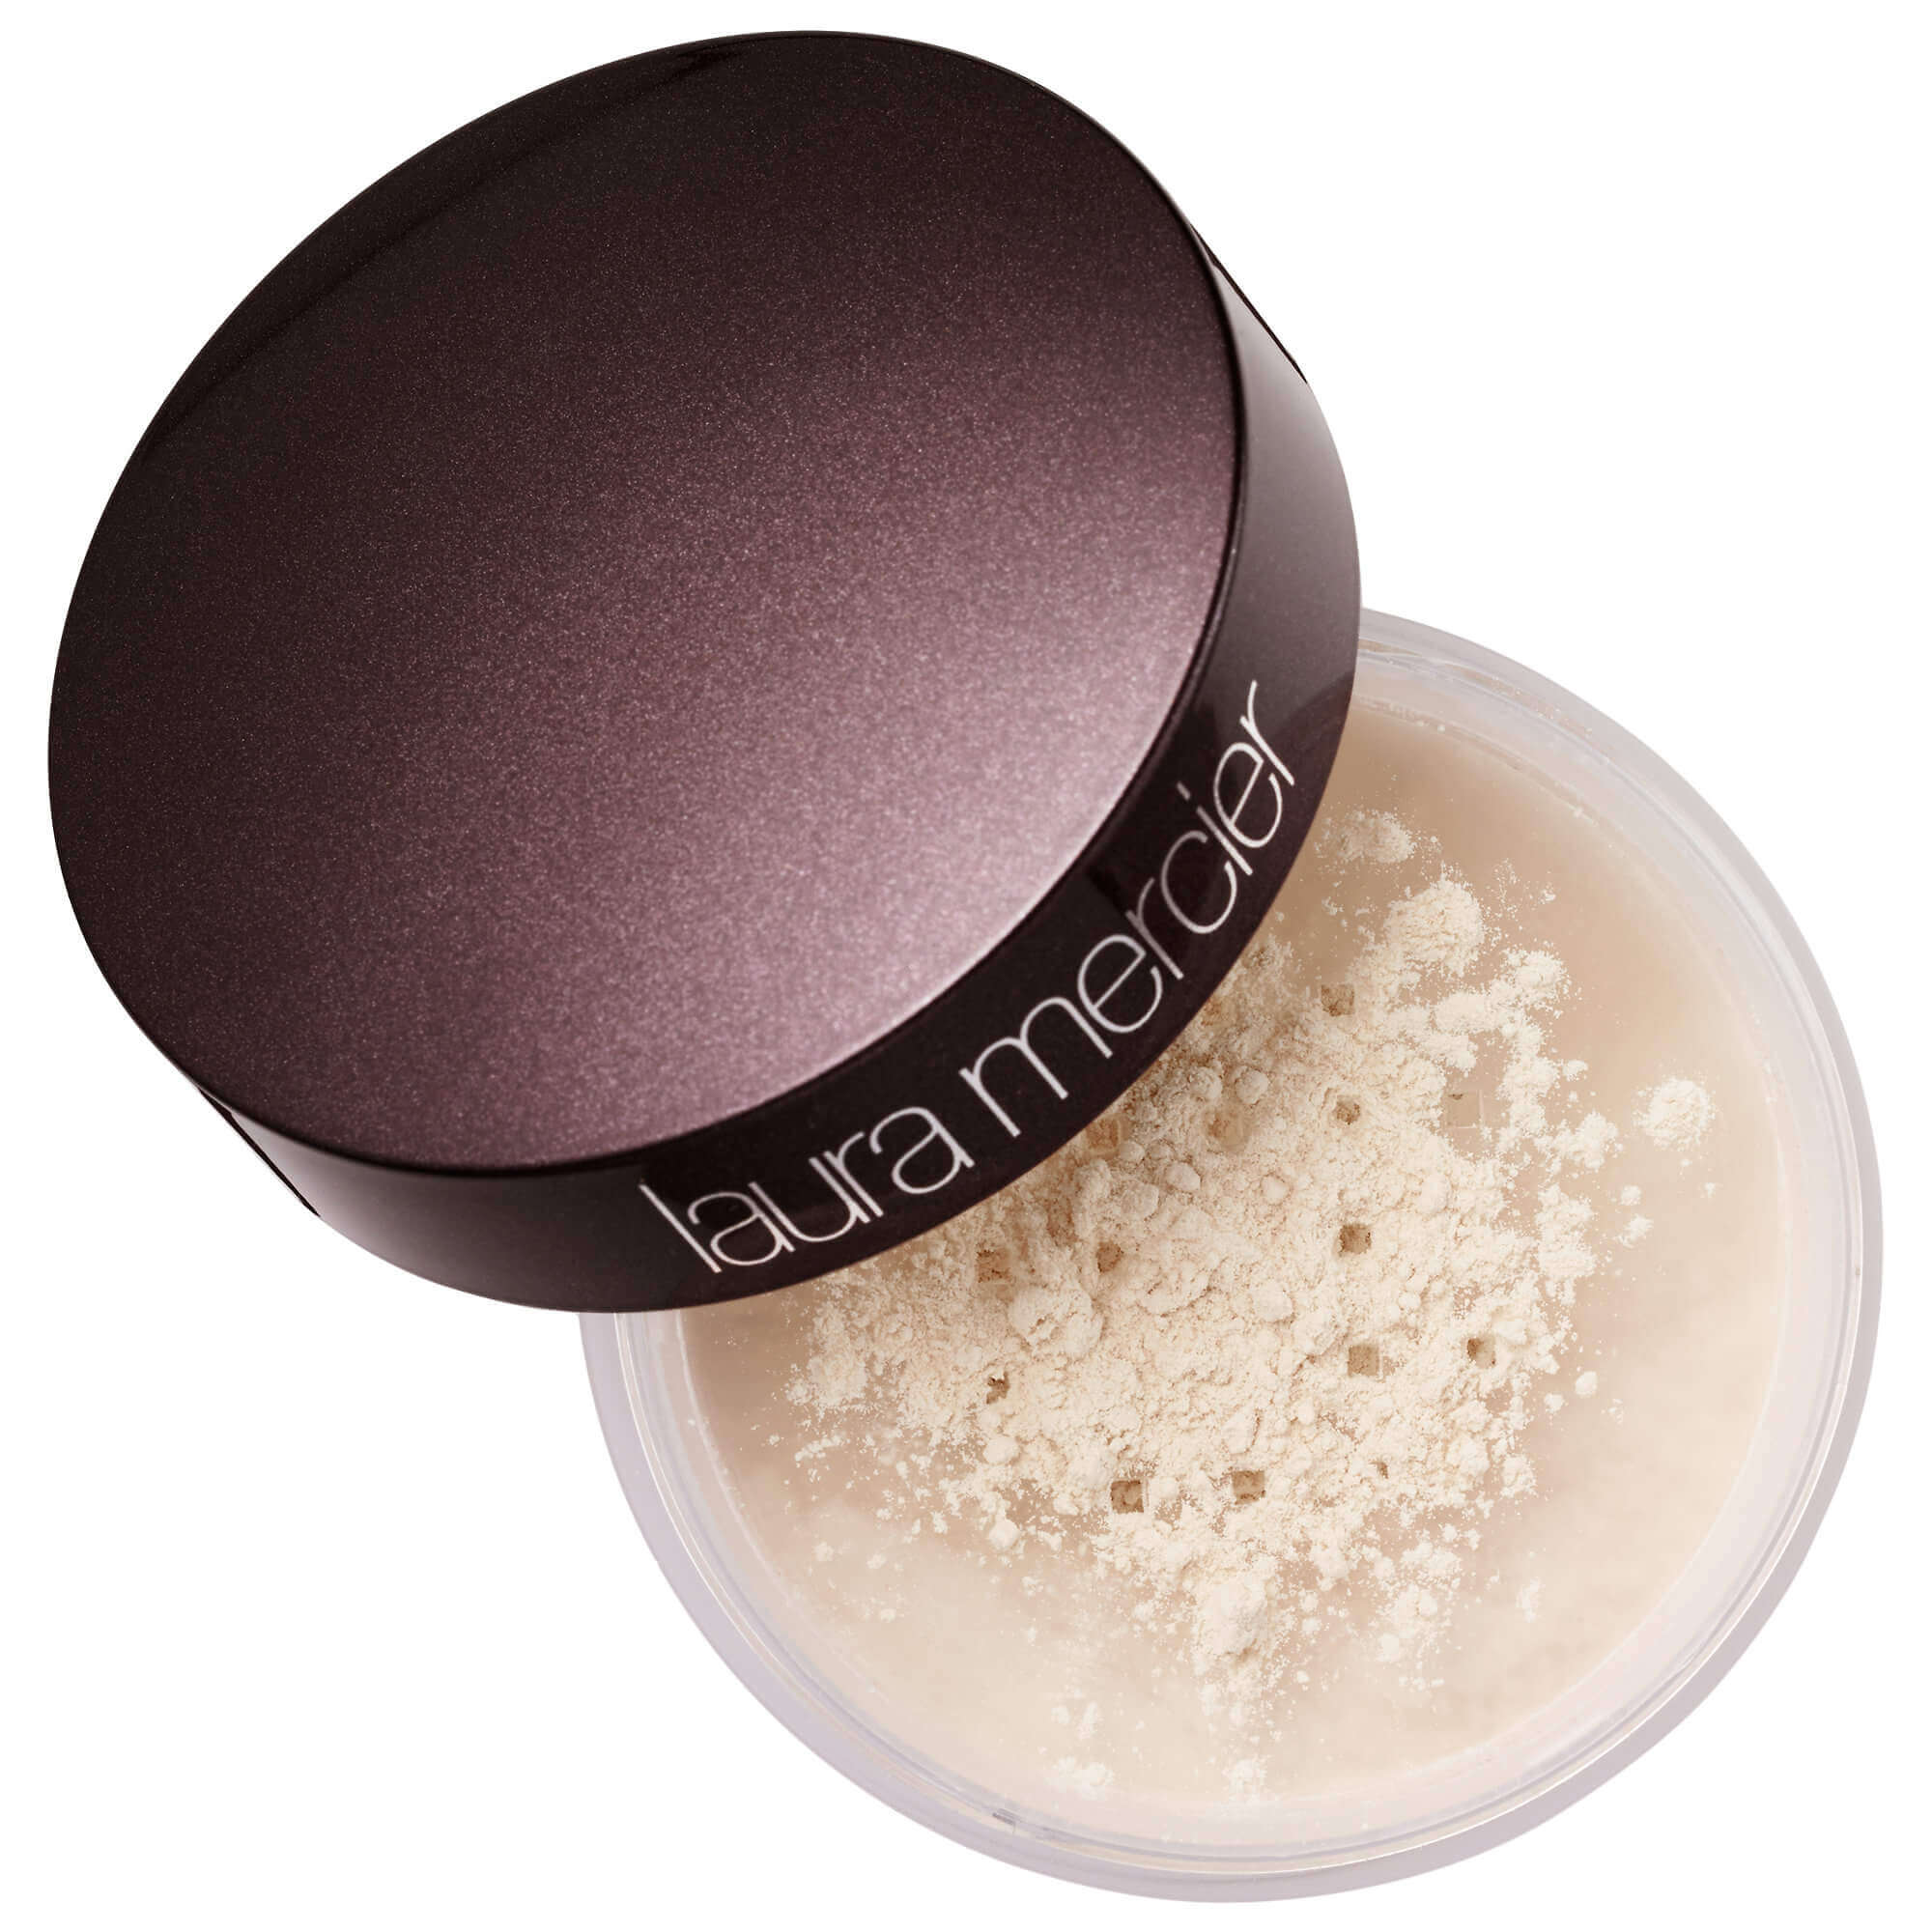 5 Translucent Powders You Might Need for A Flawless Look ...